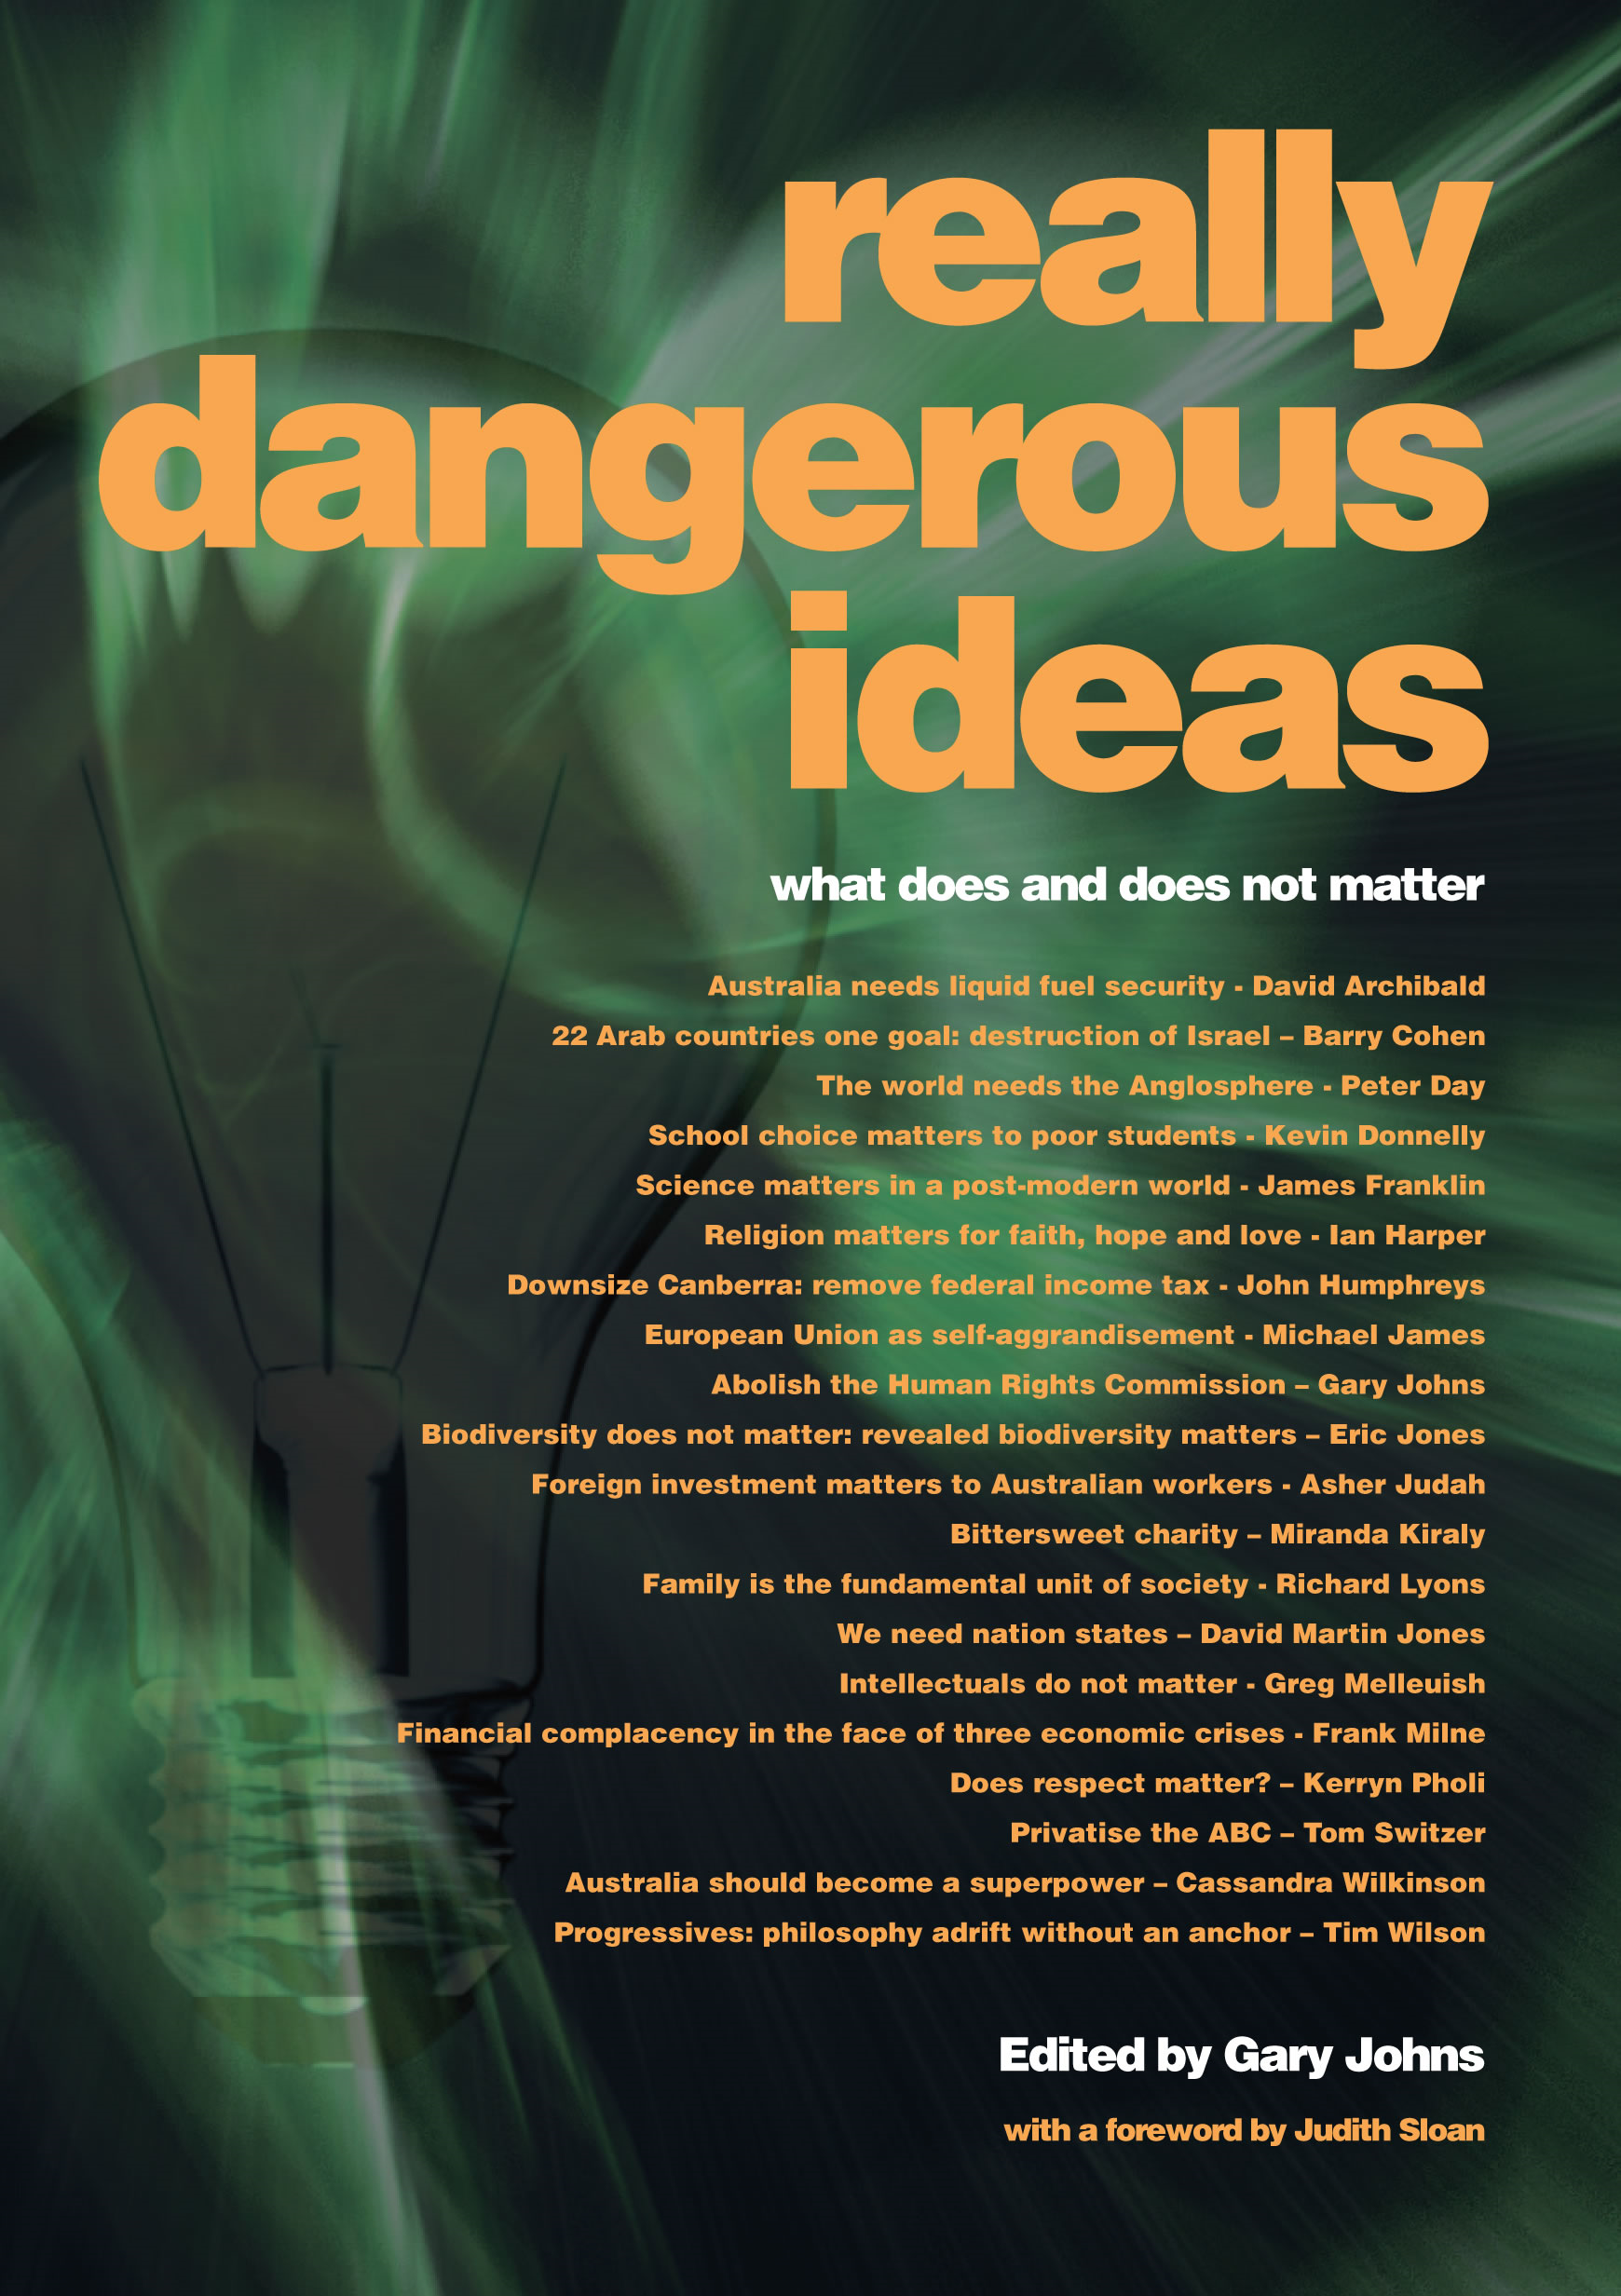 Really dangerous ideas: what does and does not matter By: Gary Johns